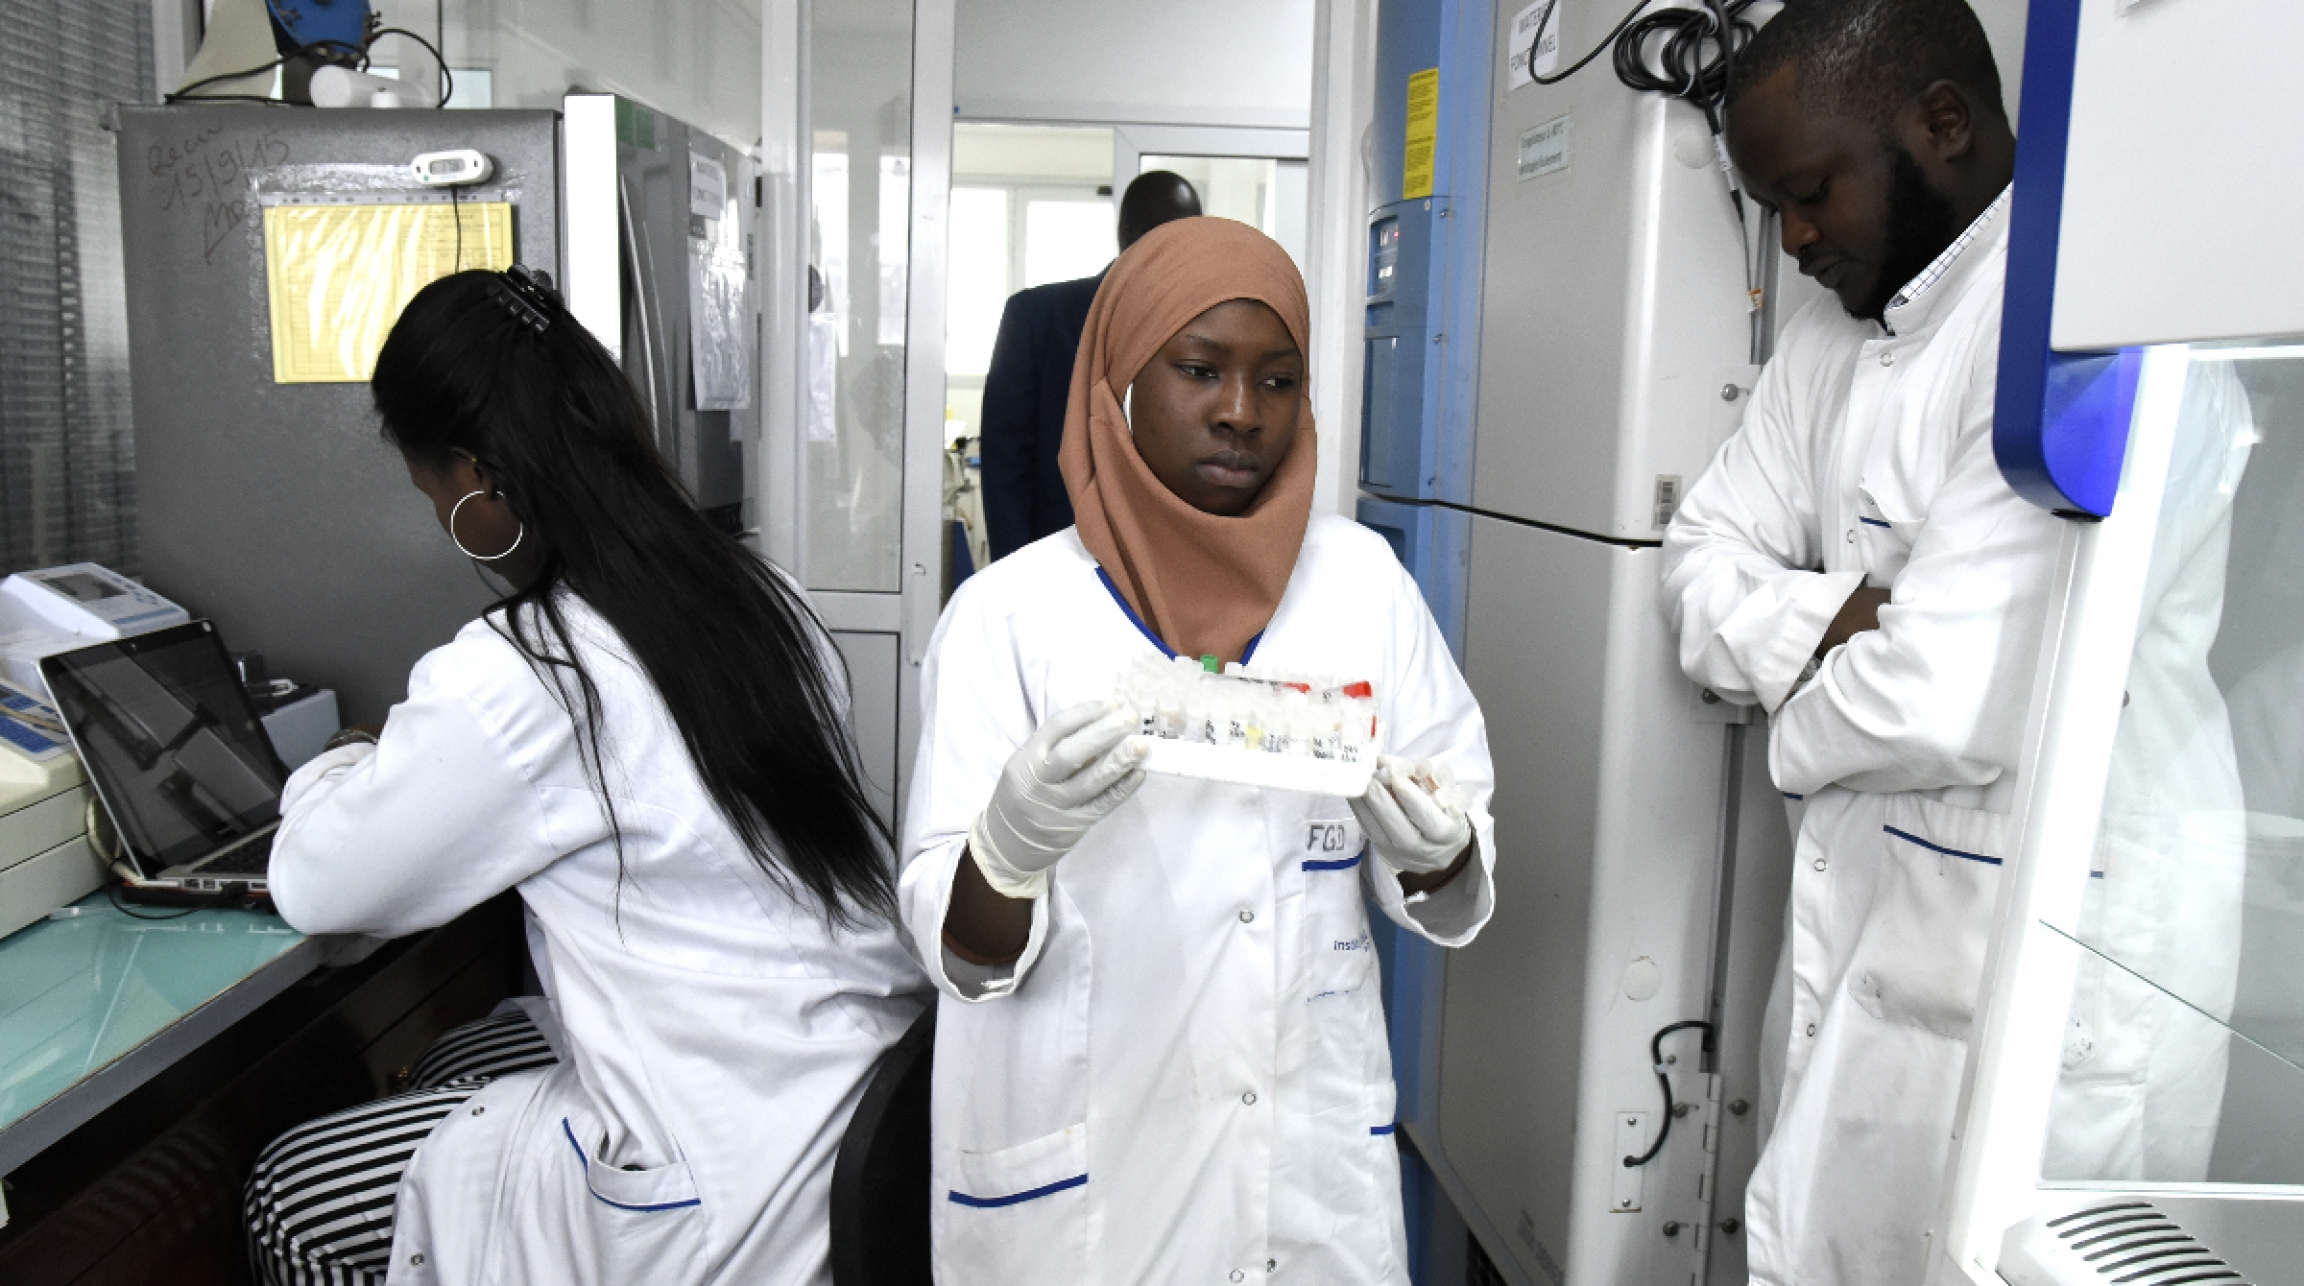 A woman in a white robe carries some lab material inside lab in Senegal.